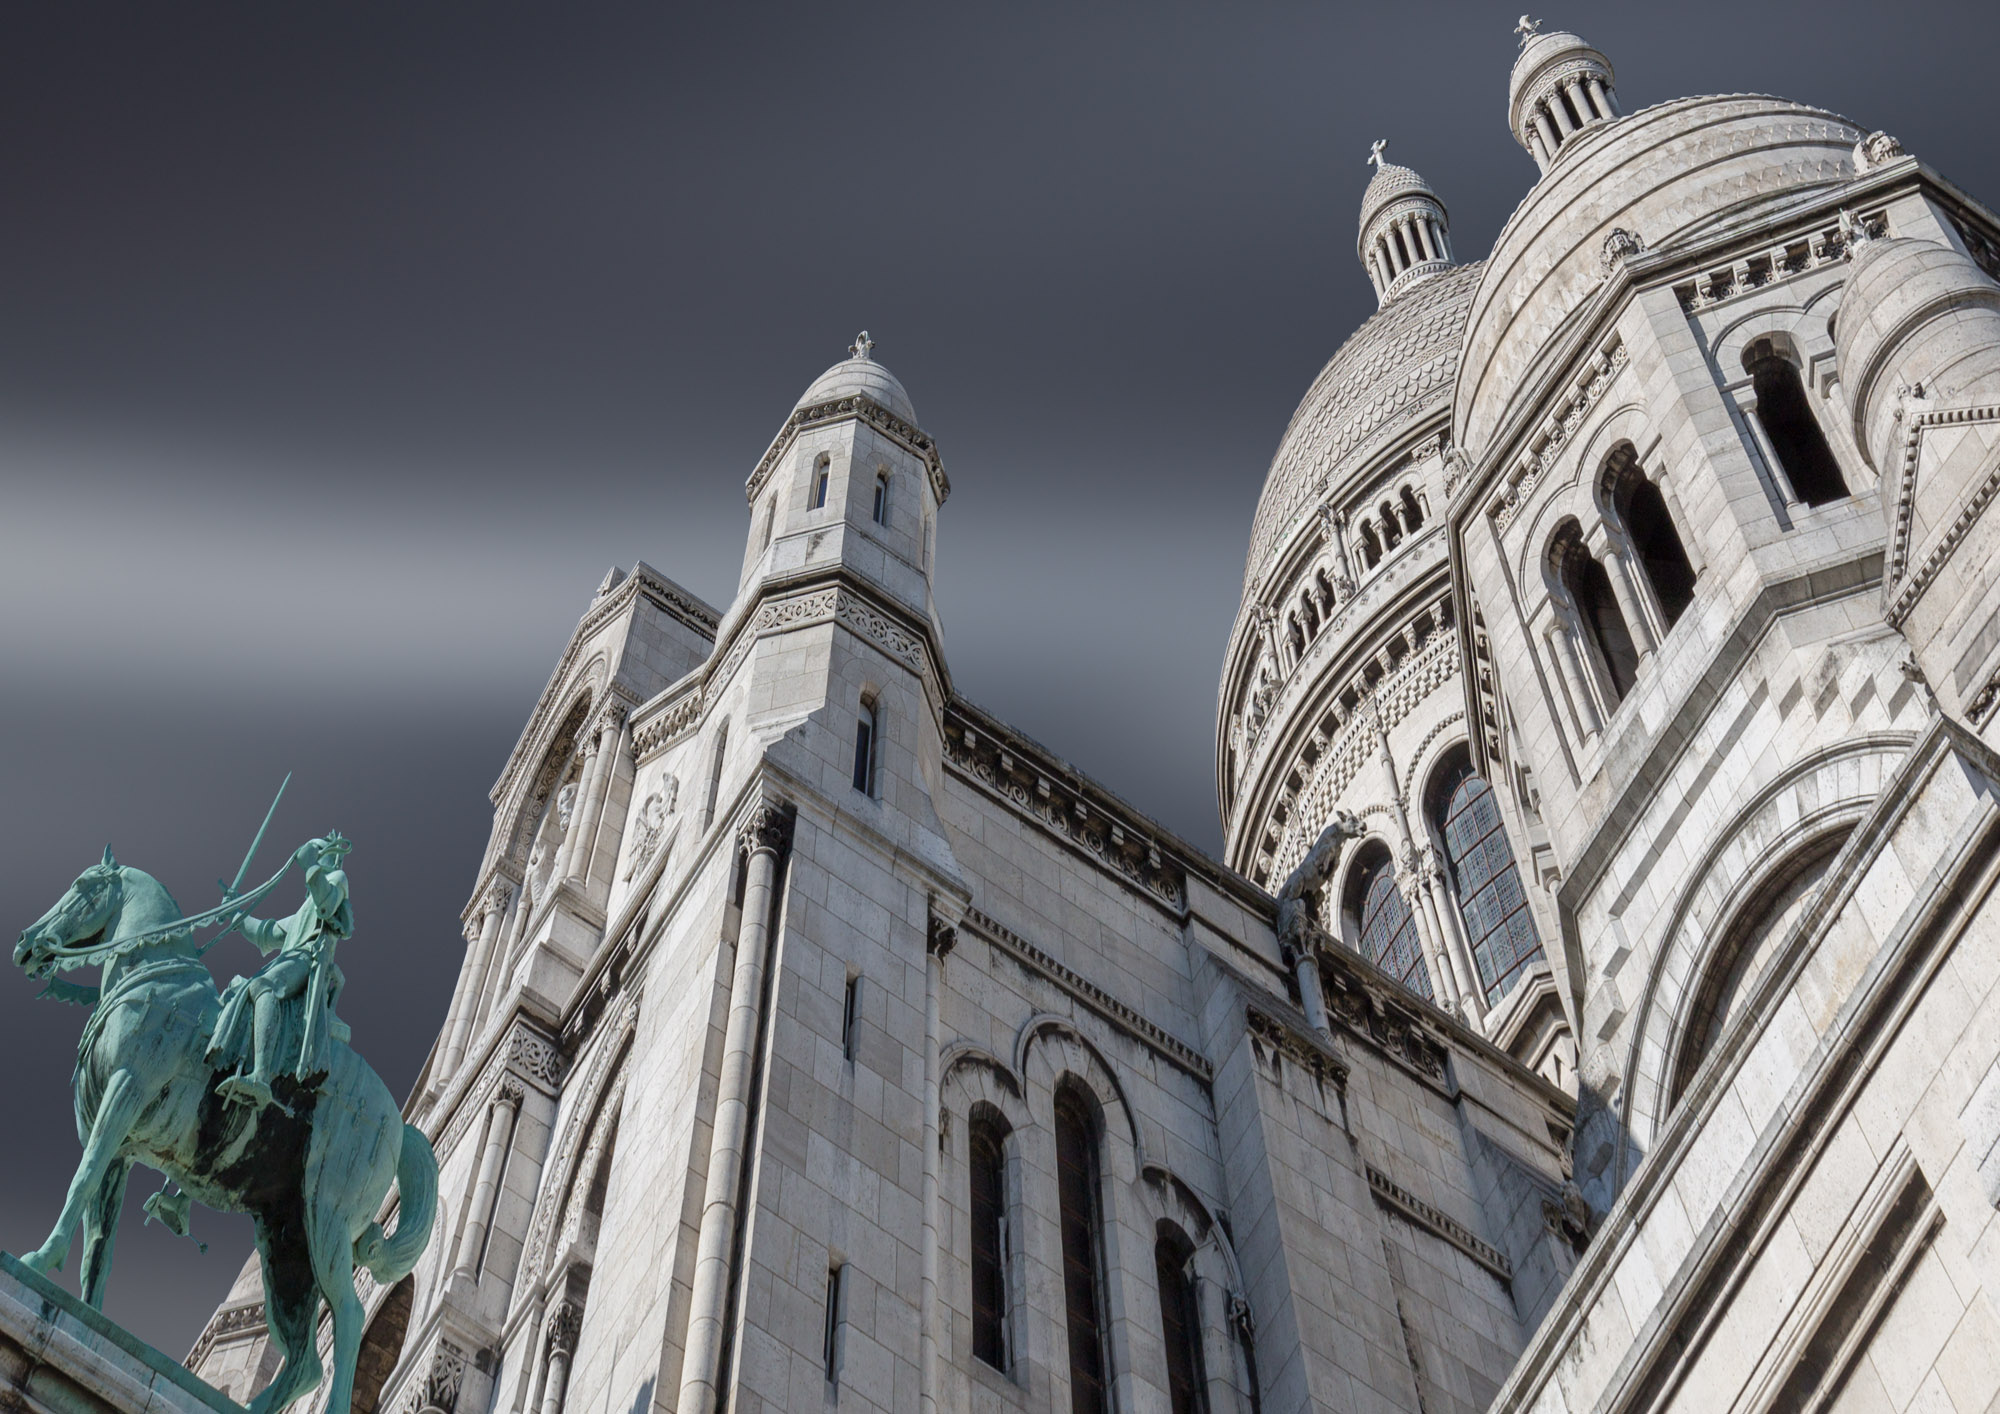 long exposure architecture photograph of Sacre Coeur church in Paris France